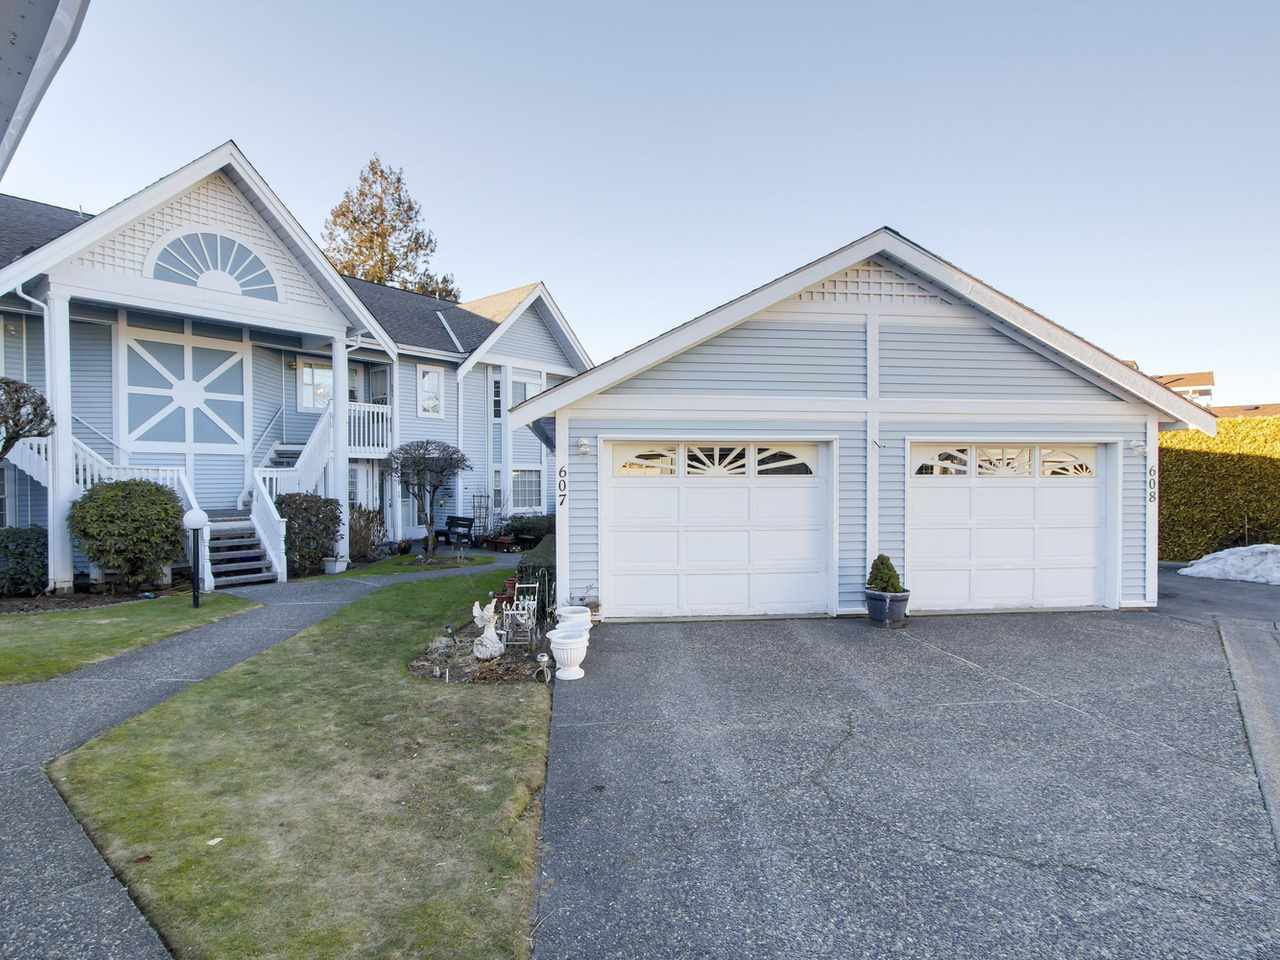 "Main Photo: 608 9131 154 Street in Surrey: Fleetwood Tynehead Townhouse for sale in ""Lexington Square"" : MLS®# R2136755"